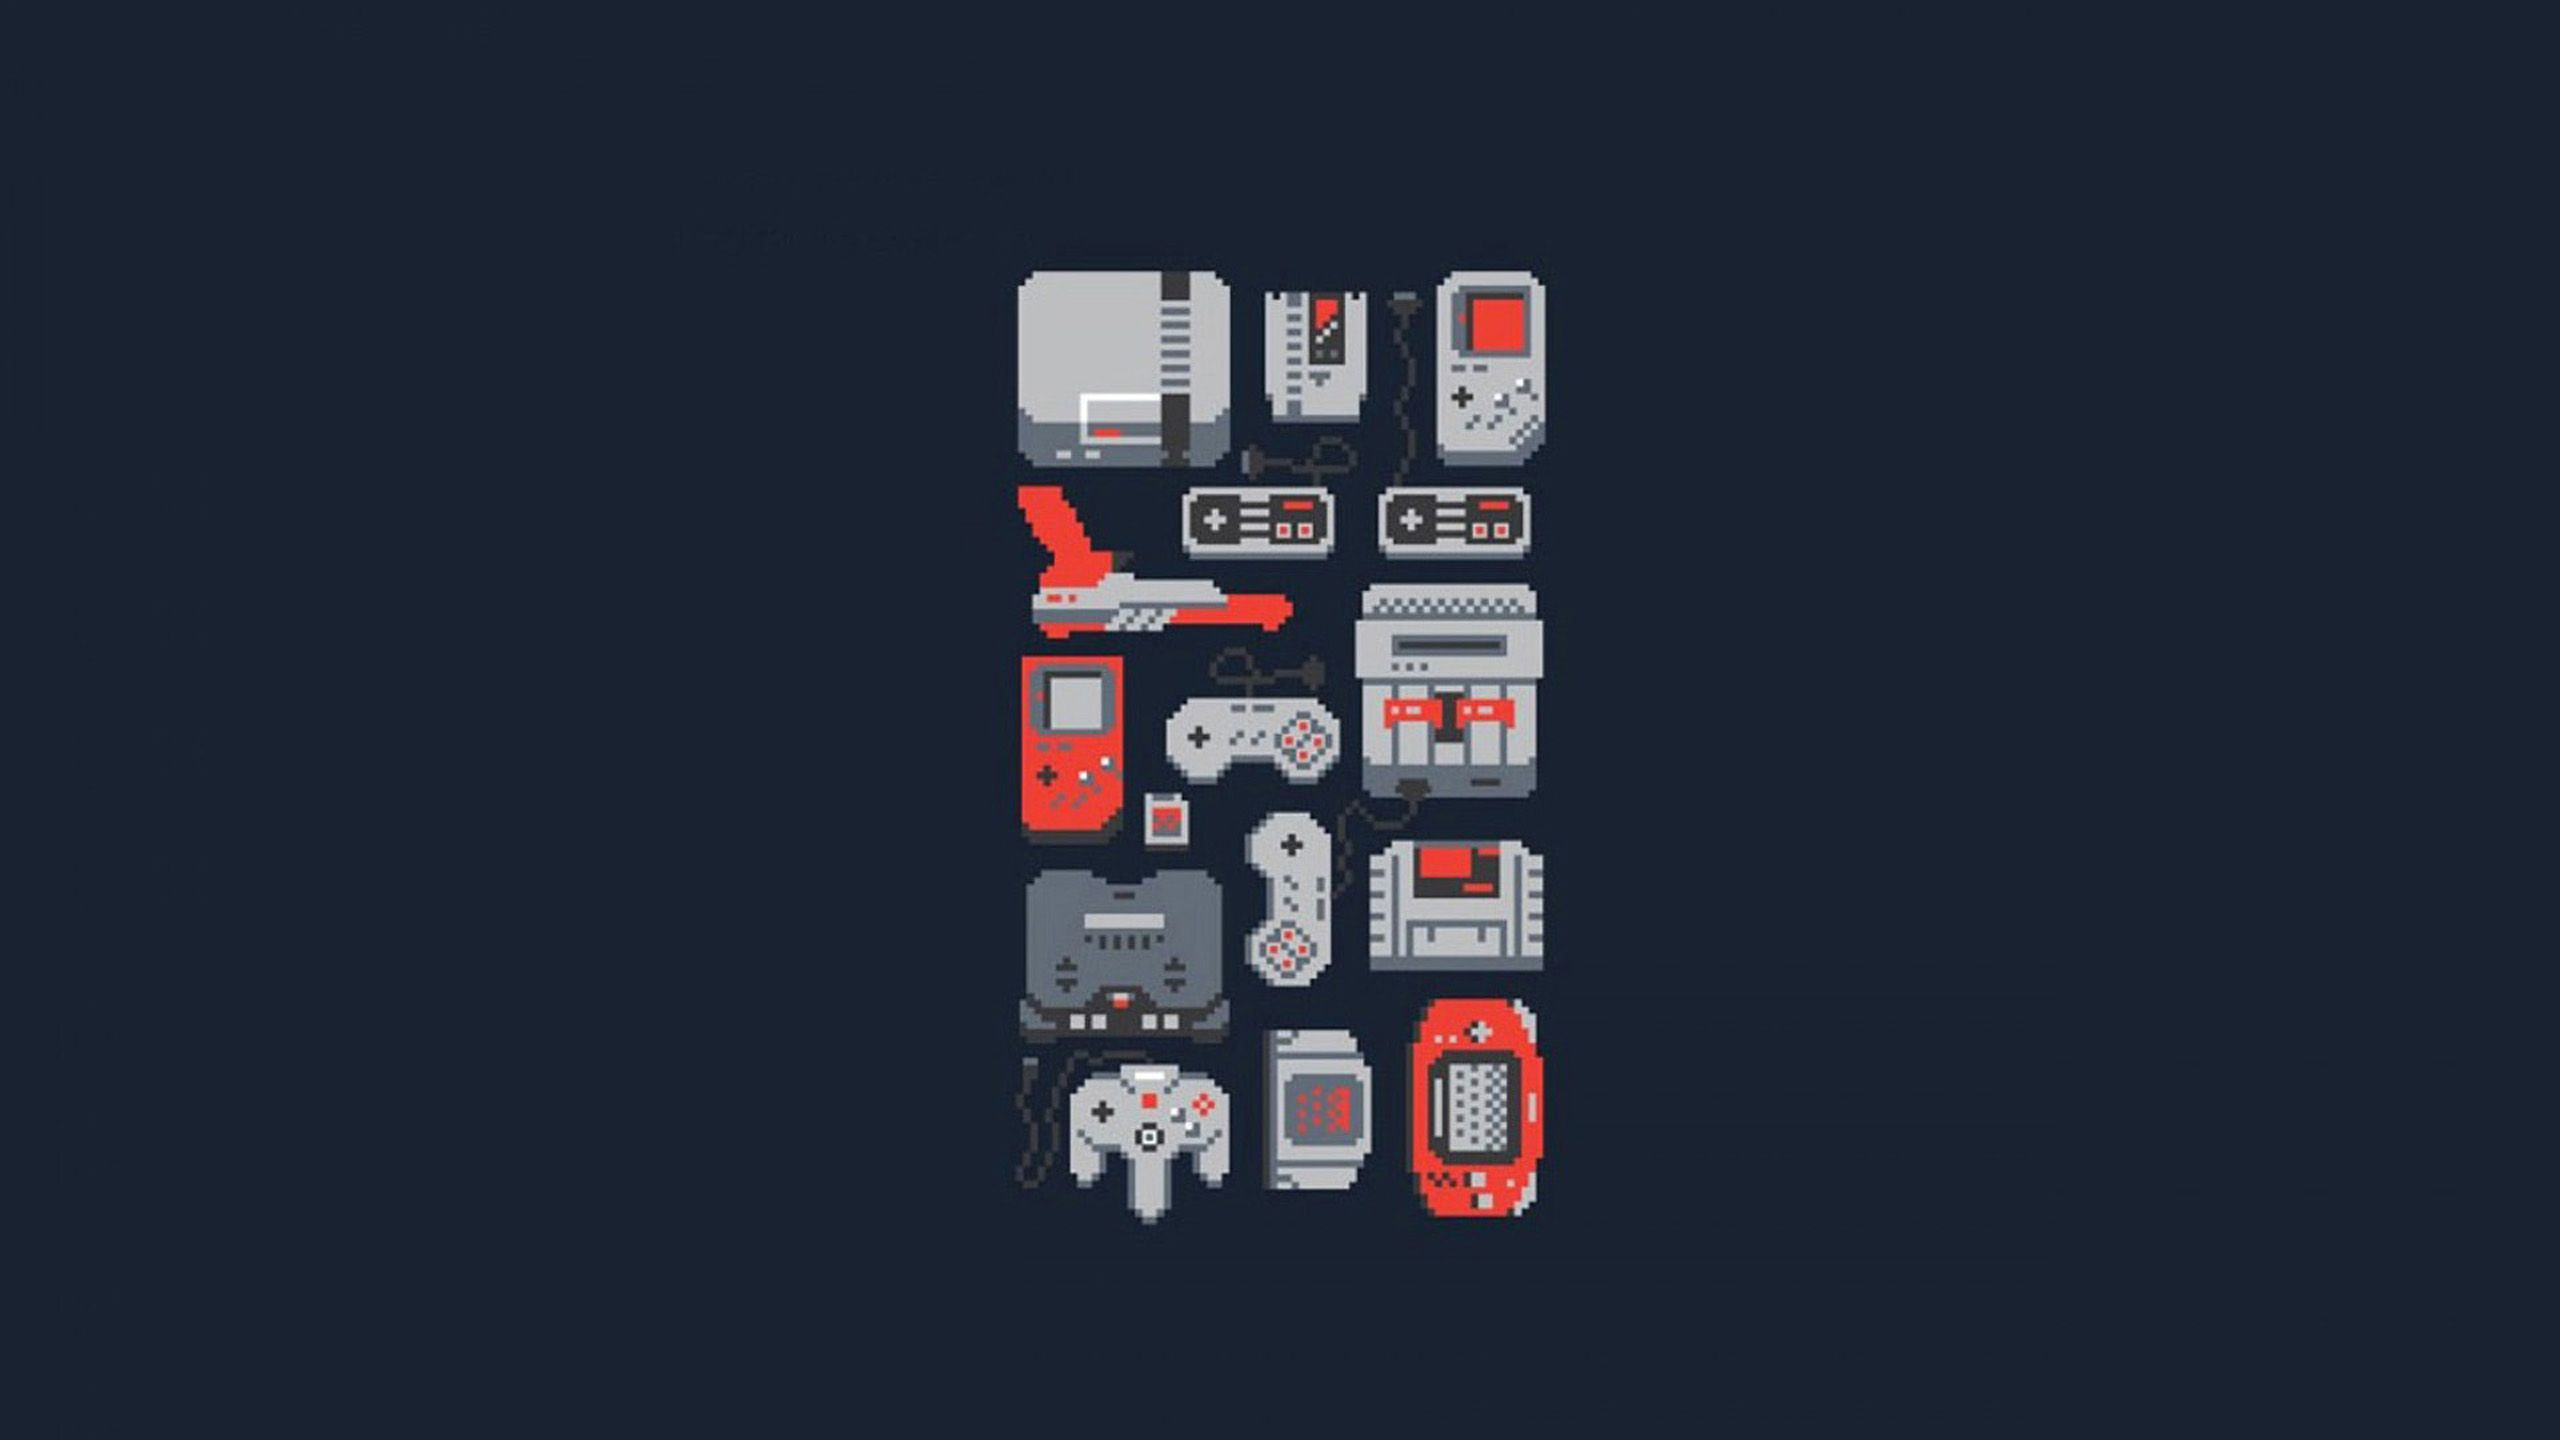 Retro Game Wallpapers   Top Retro Game Backgrounds 2560x1440